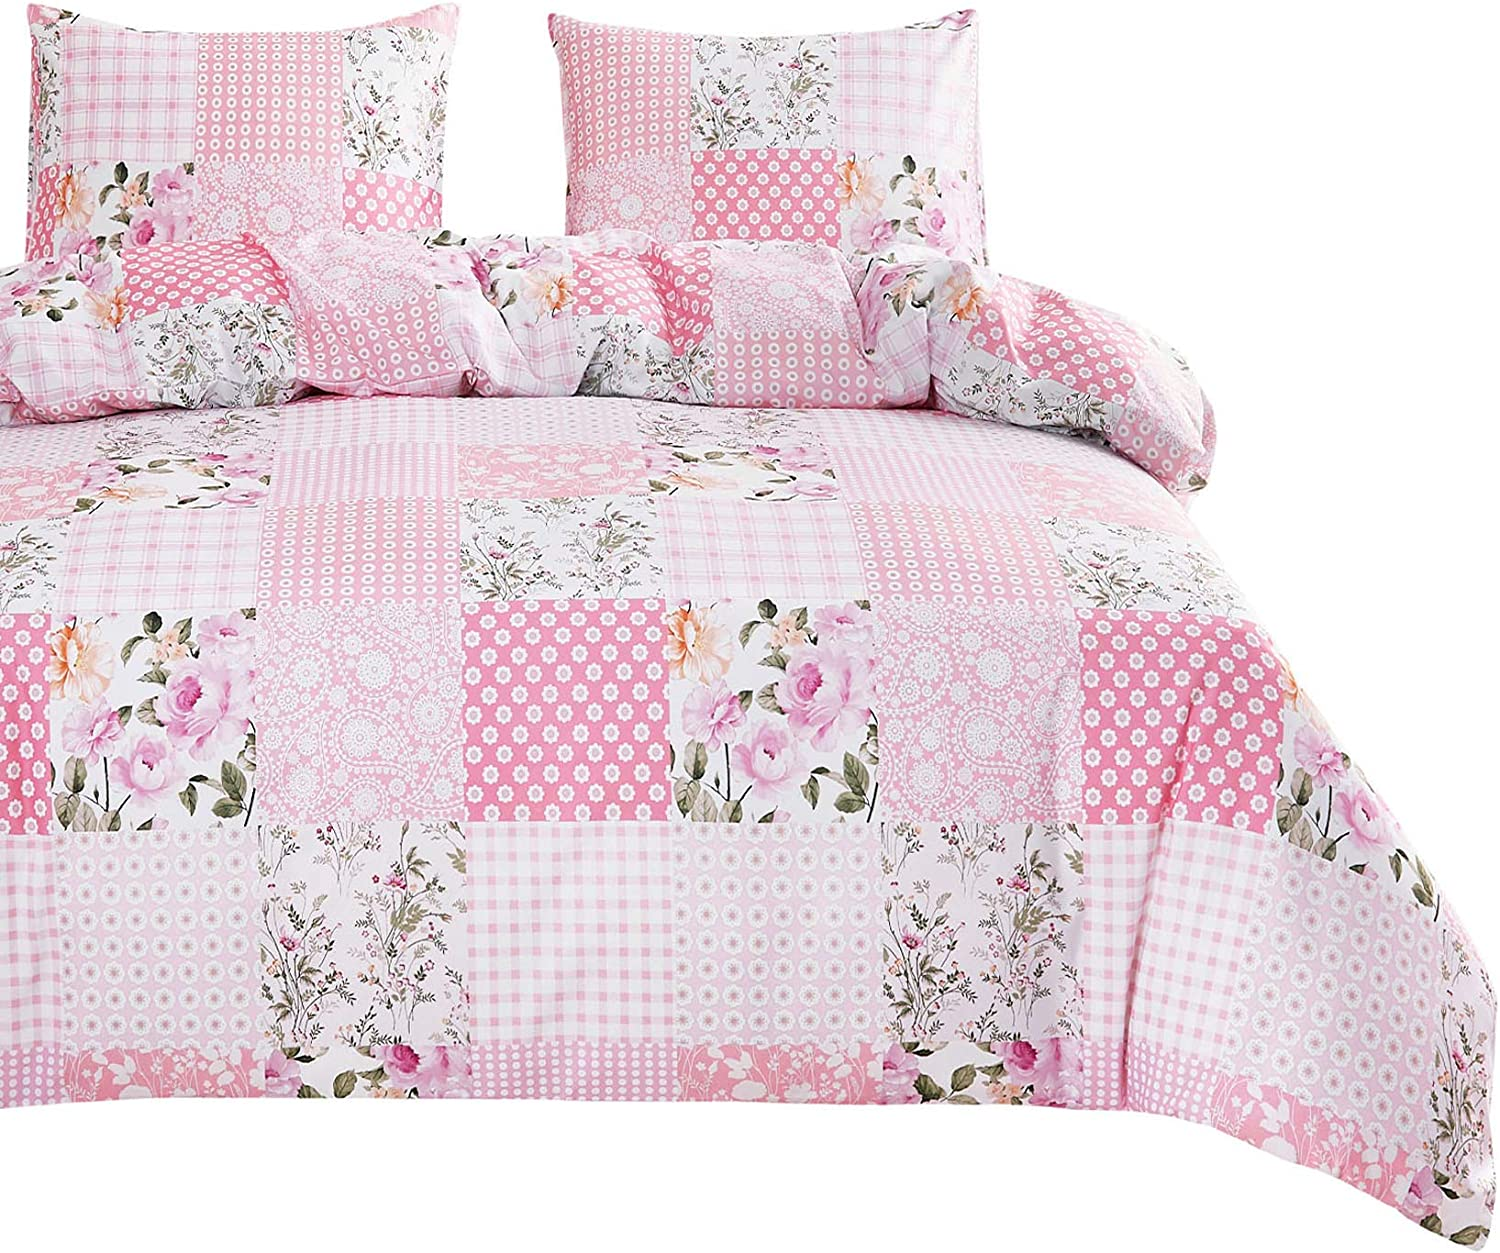 Wake In Cloud - Patchwork Comforter Set, Pink Floral Flowers Botanical Plant Geometric Motif Pattern Printed, Soft Microfiber Bedding (3pcs, Queen Size)